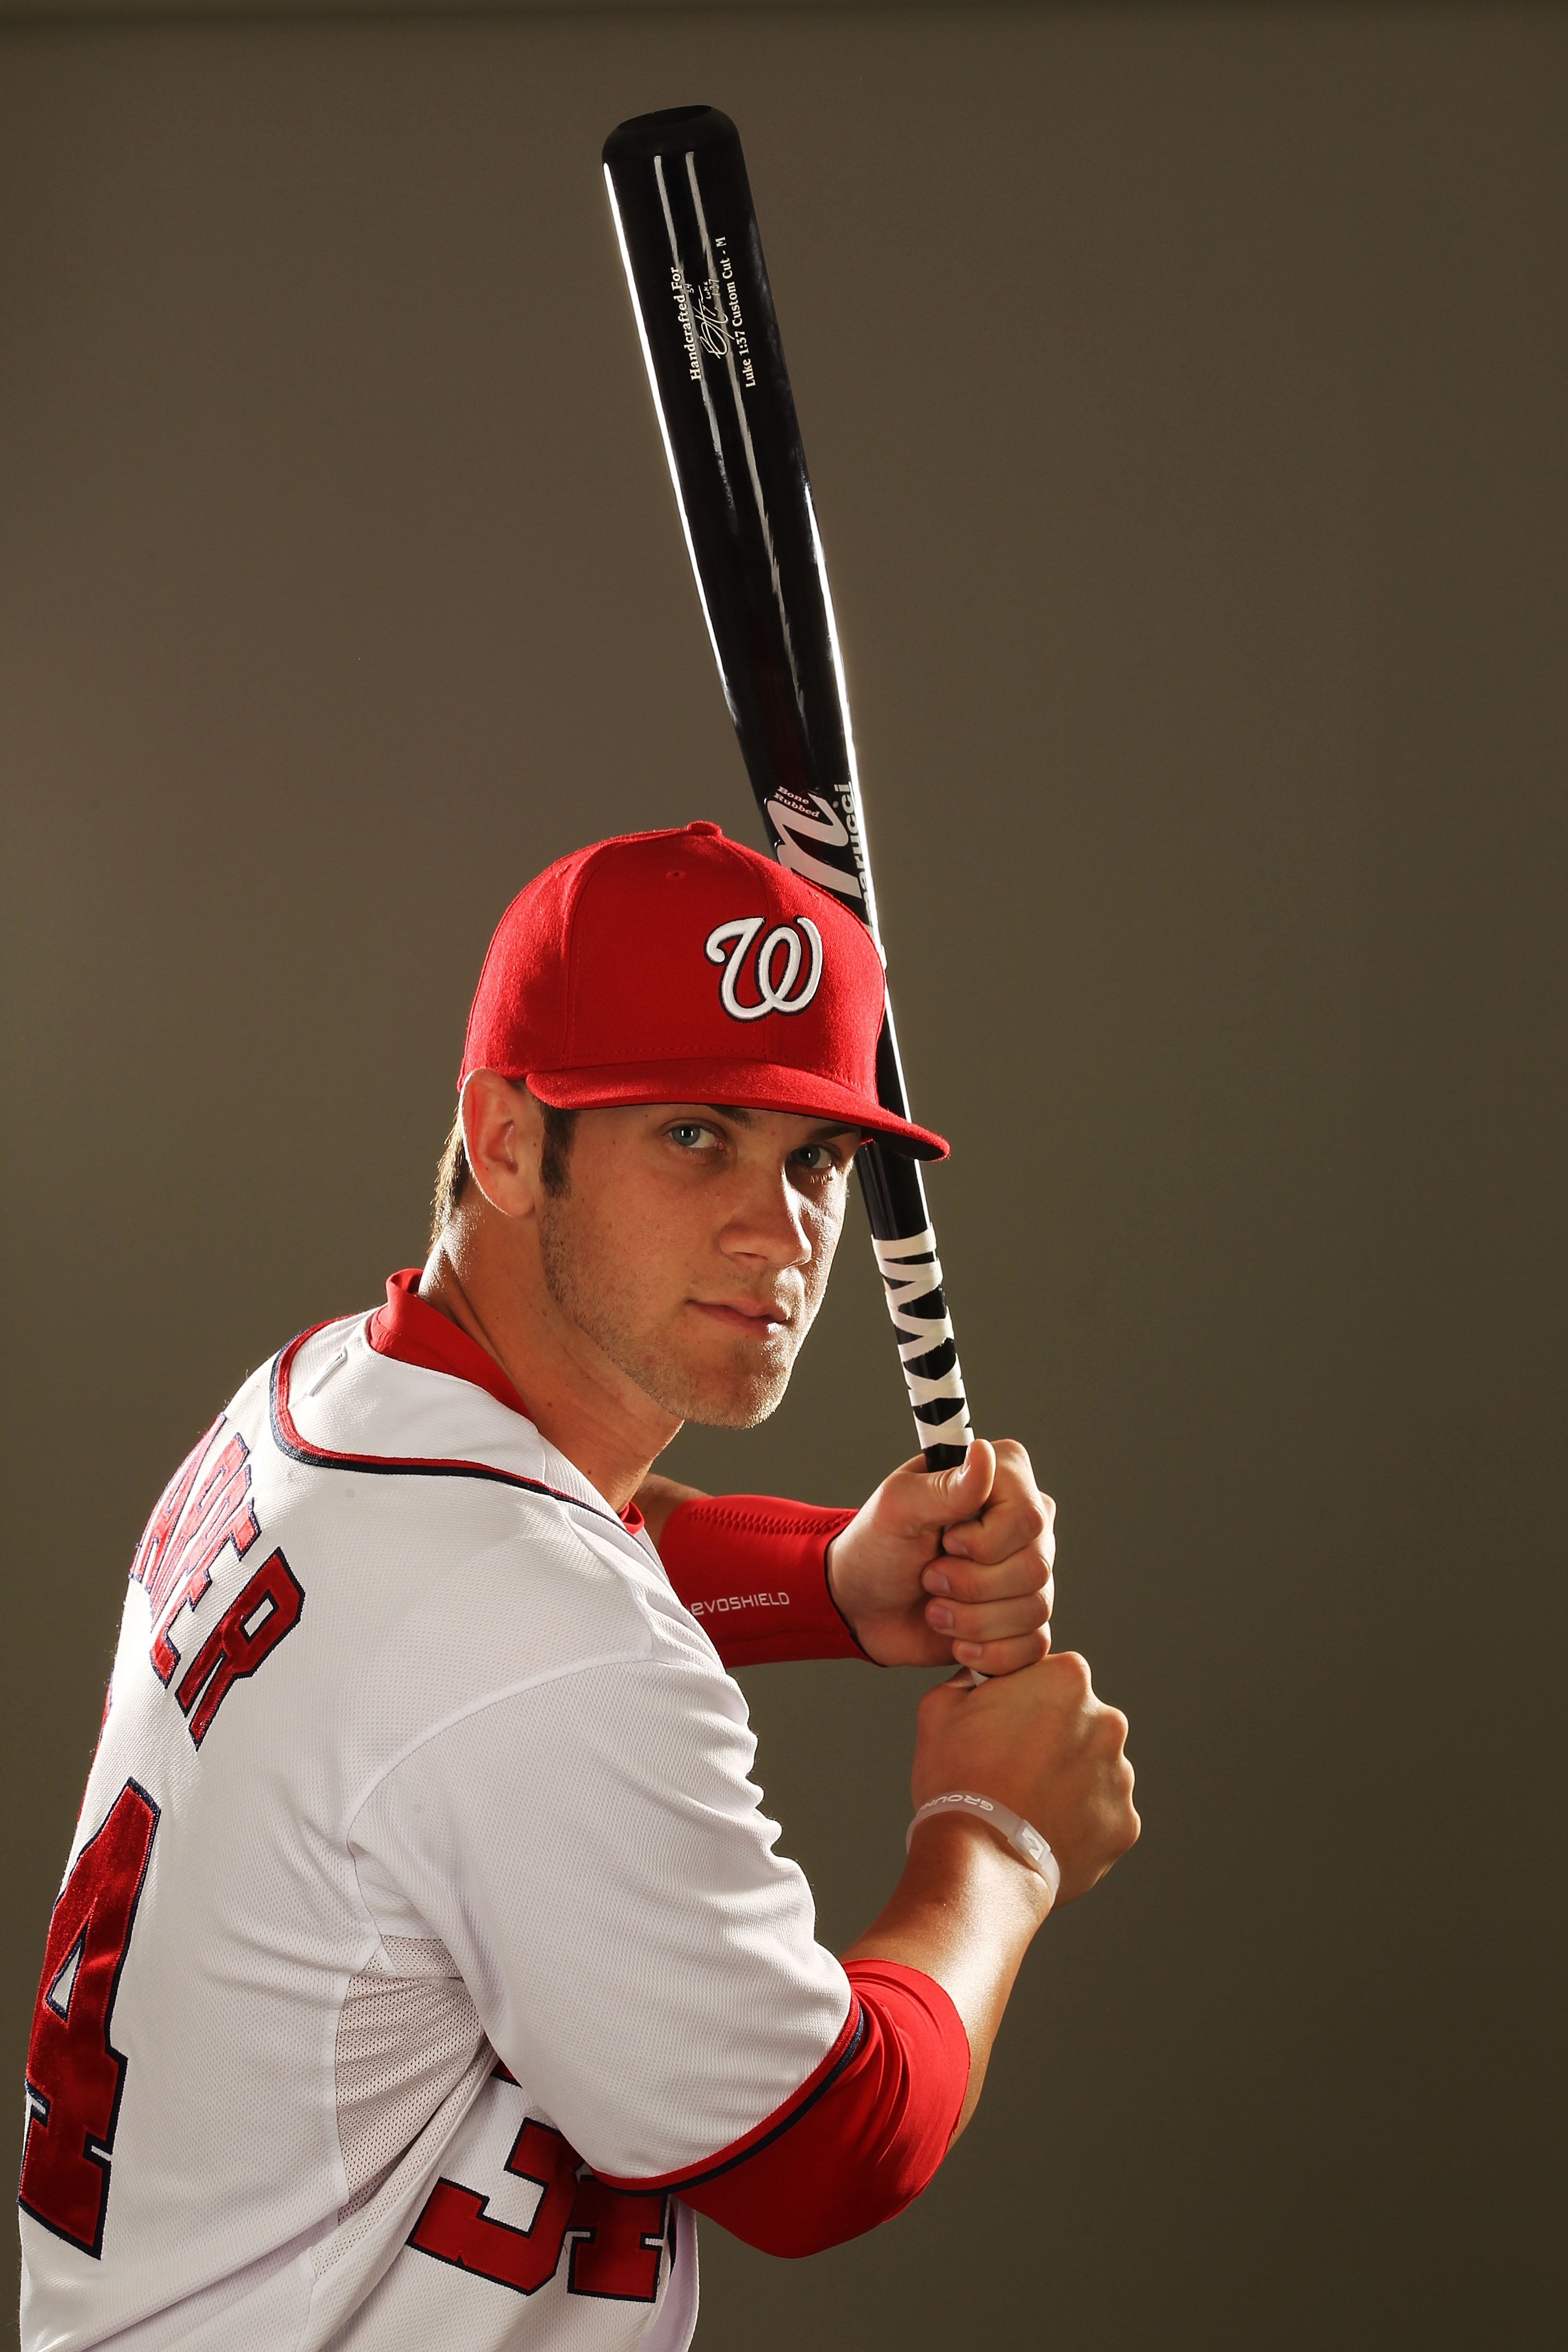 VIERA, FL - FEBRUARY 25:  Bryce Harper #34 of the Washington Nationals poses for a portrait during Spring Training Photo Day at Space Coast Stadium on February 25, 2011 in Viera, Florida.  (Photo by Al Bello/Getty Images)